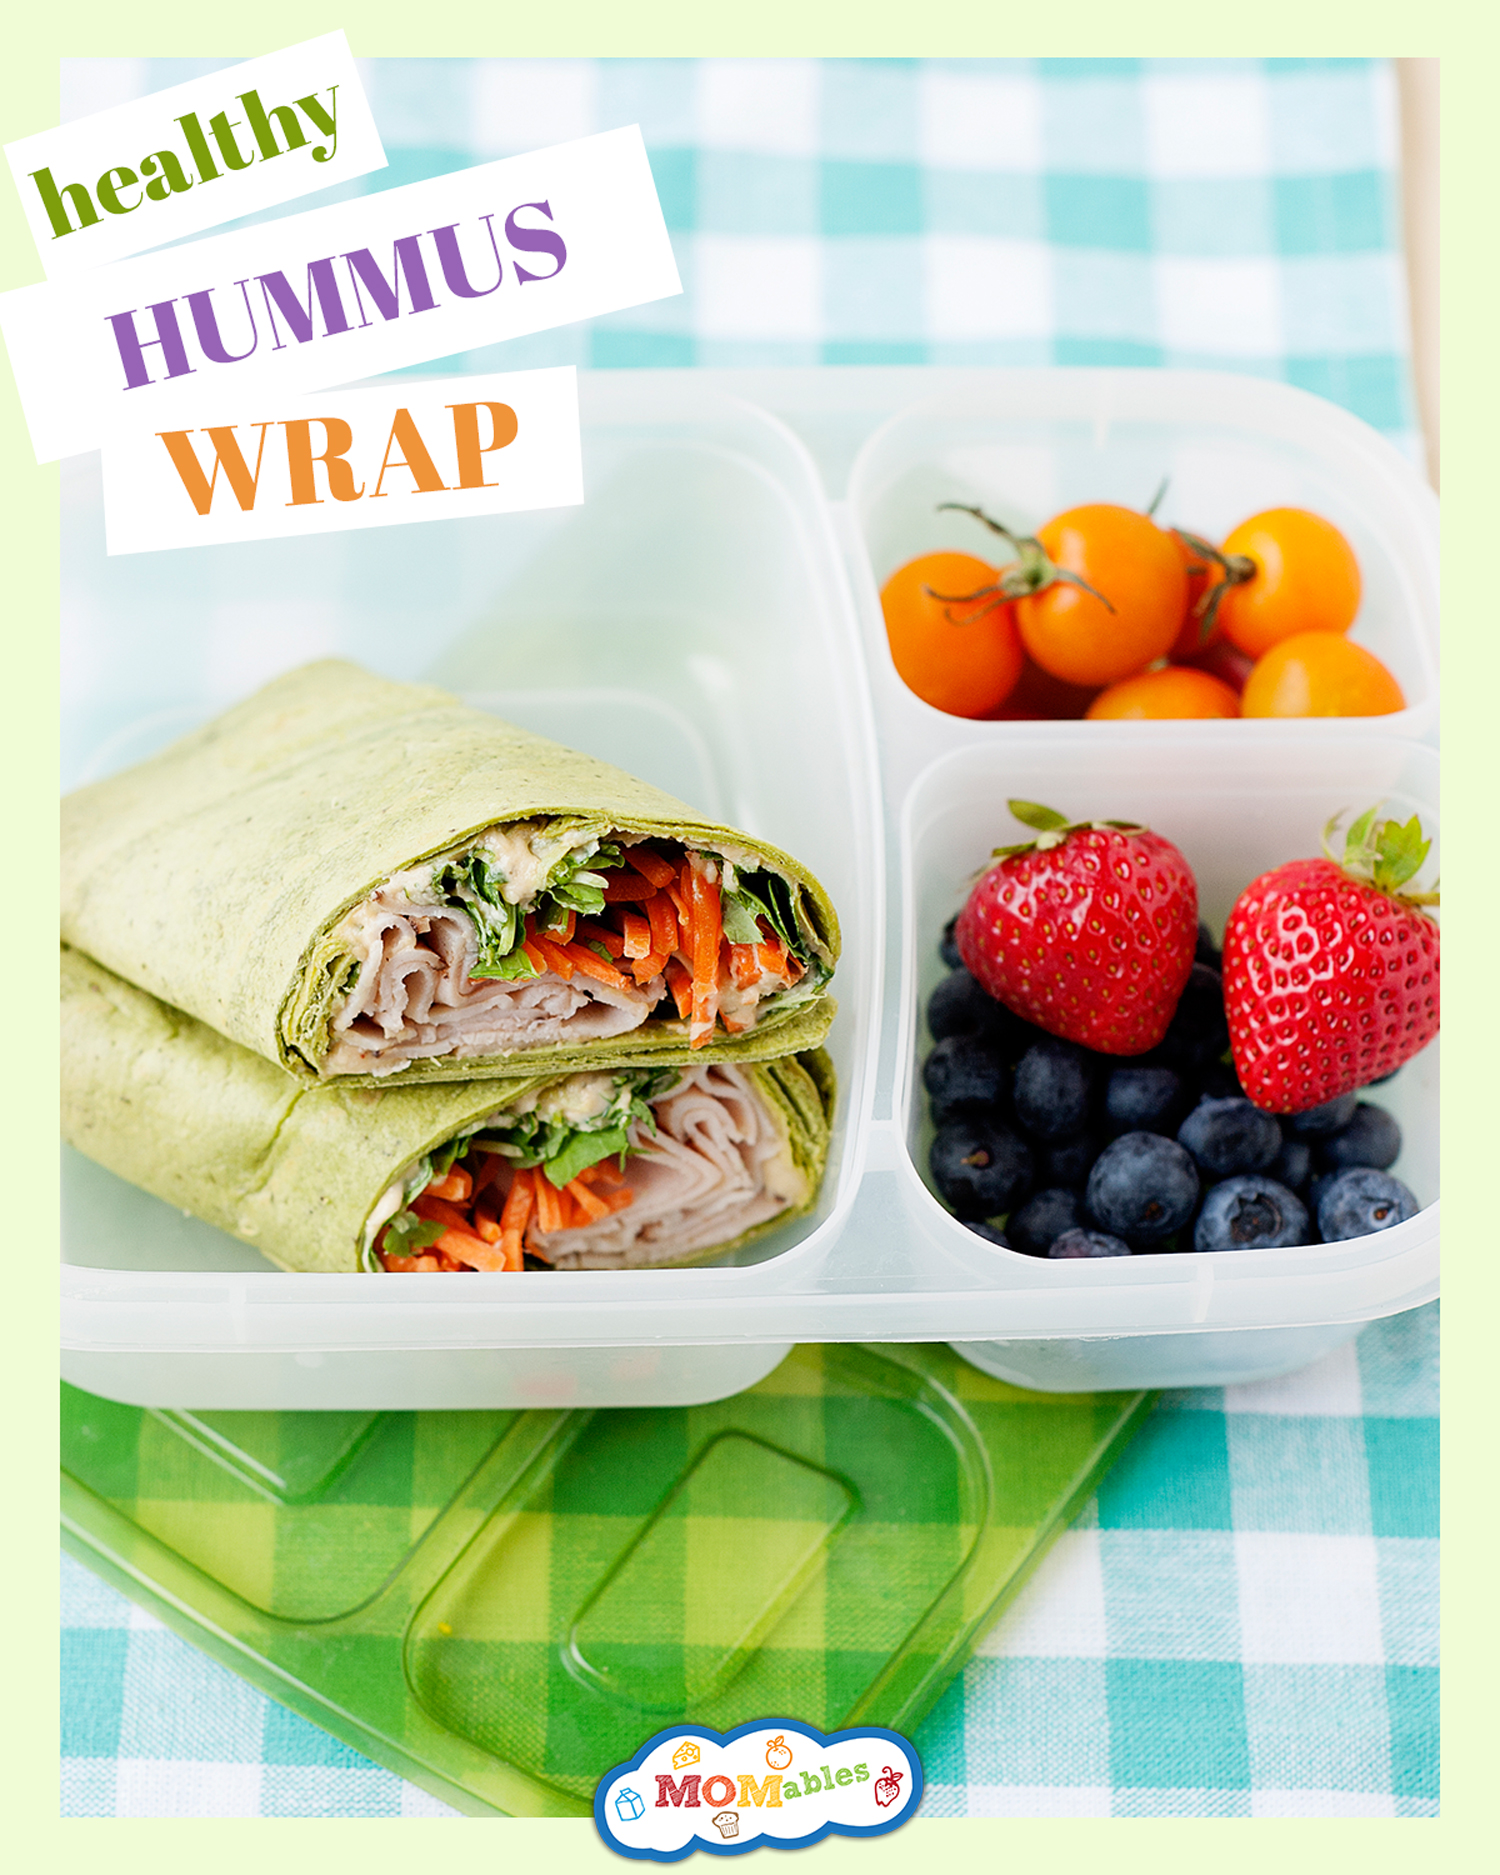 hummus wrap in a lunch container with berries